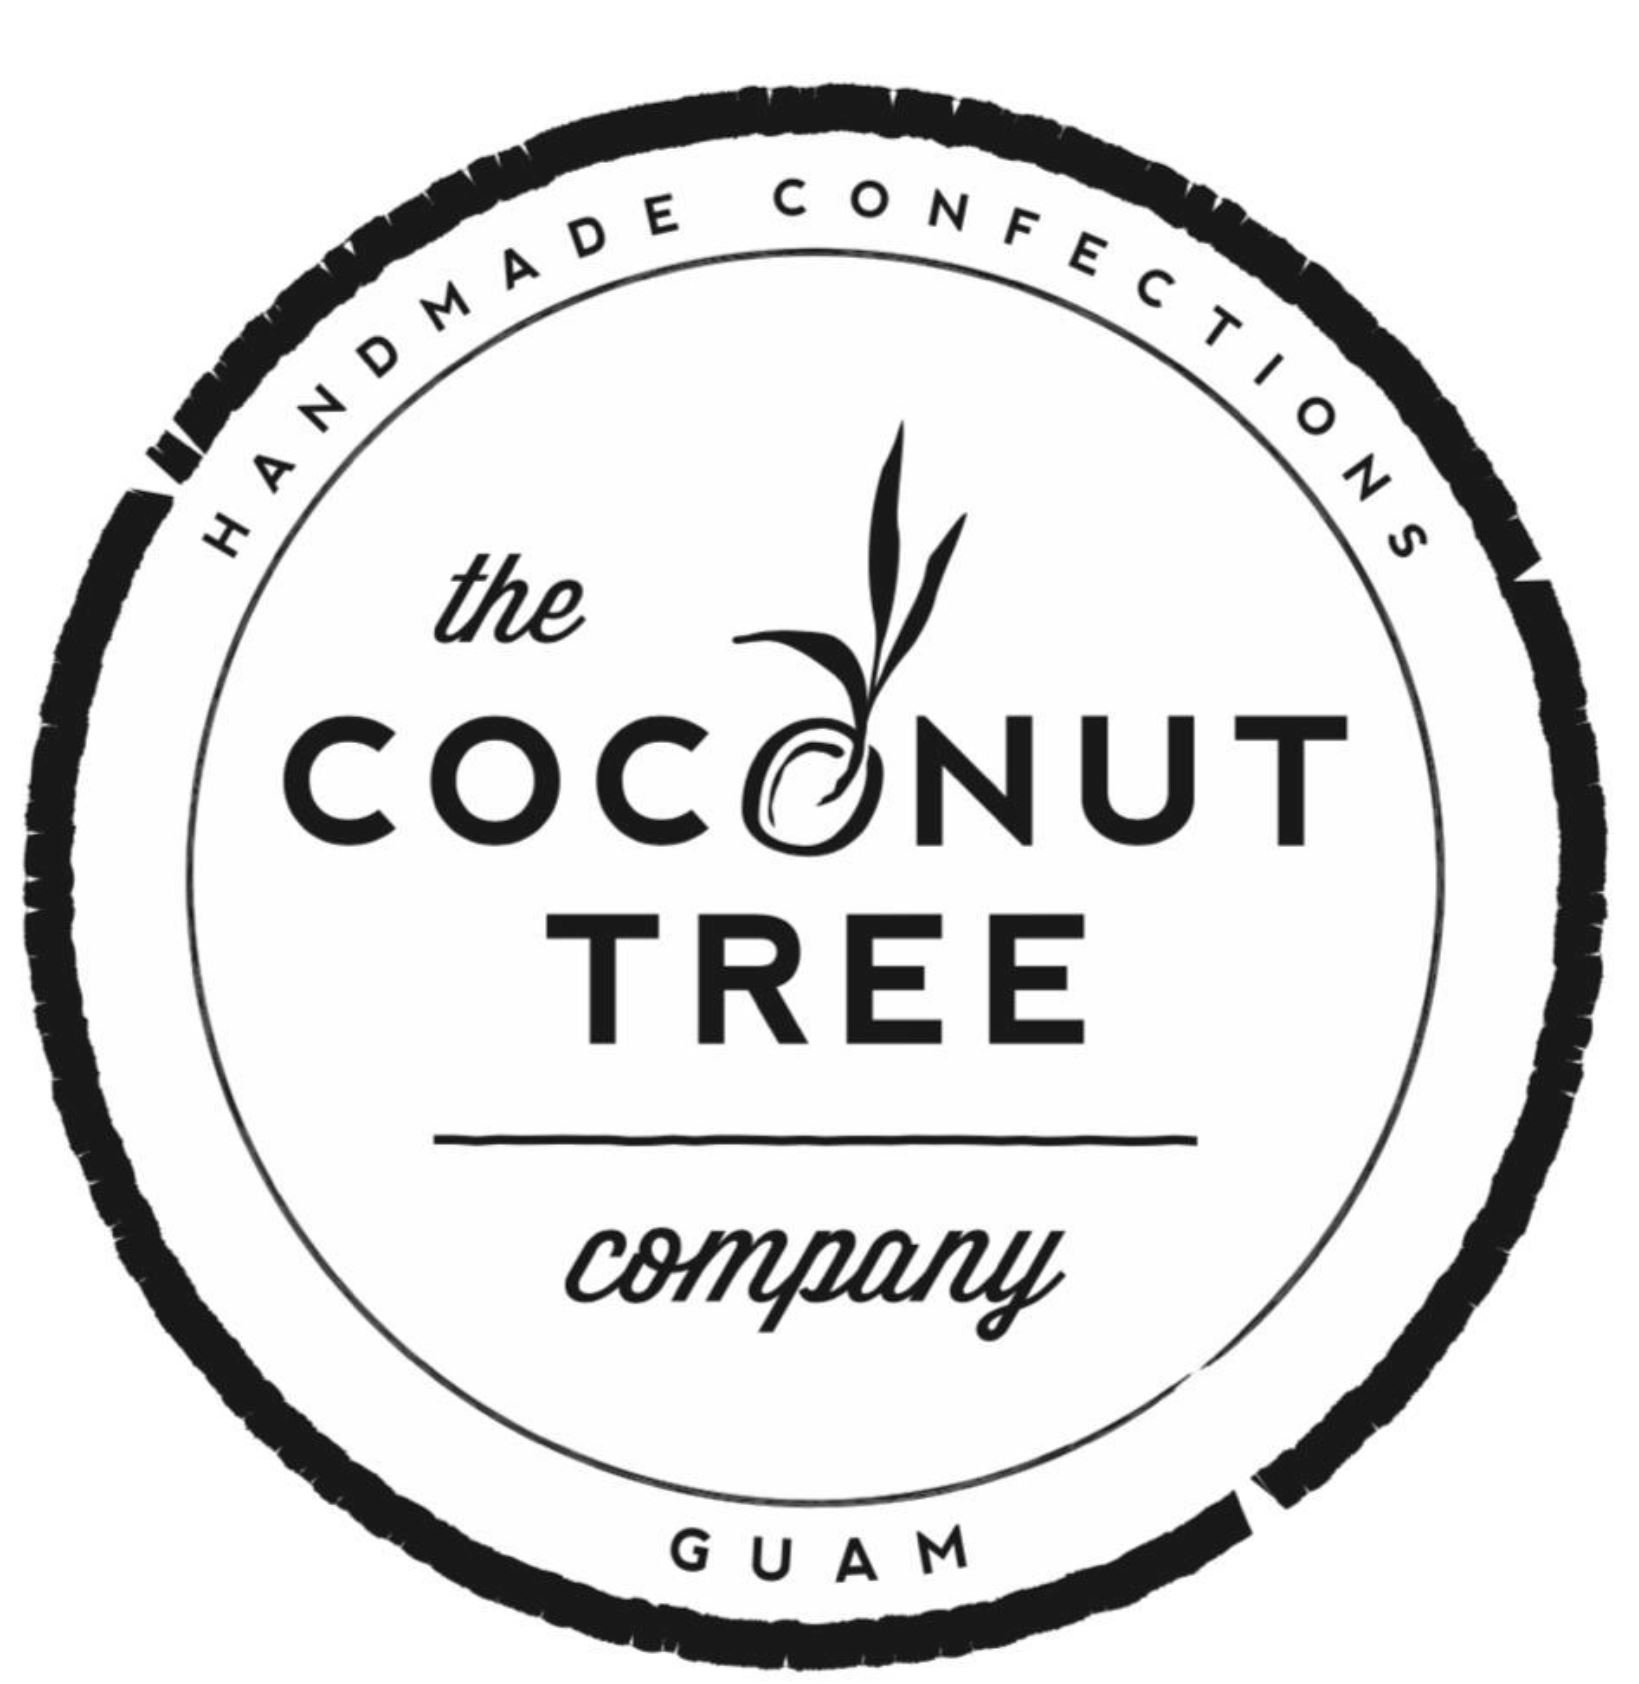 Coconut Candy - Traditional, Chocolate, and Mango Flavors